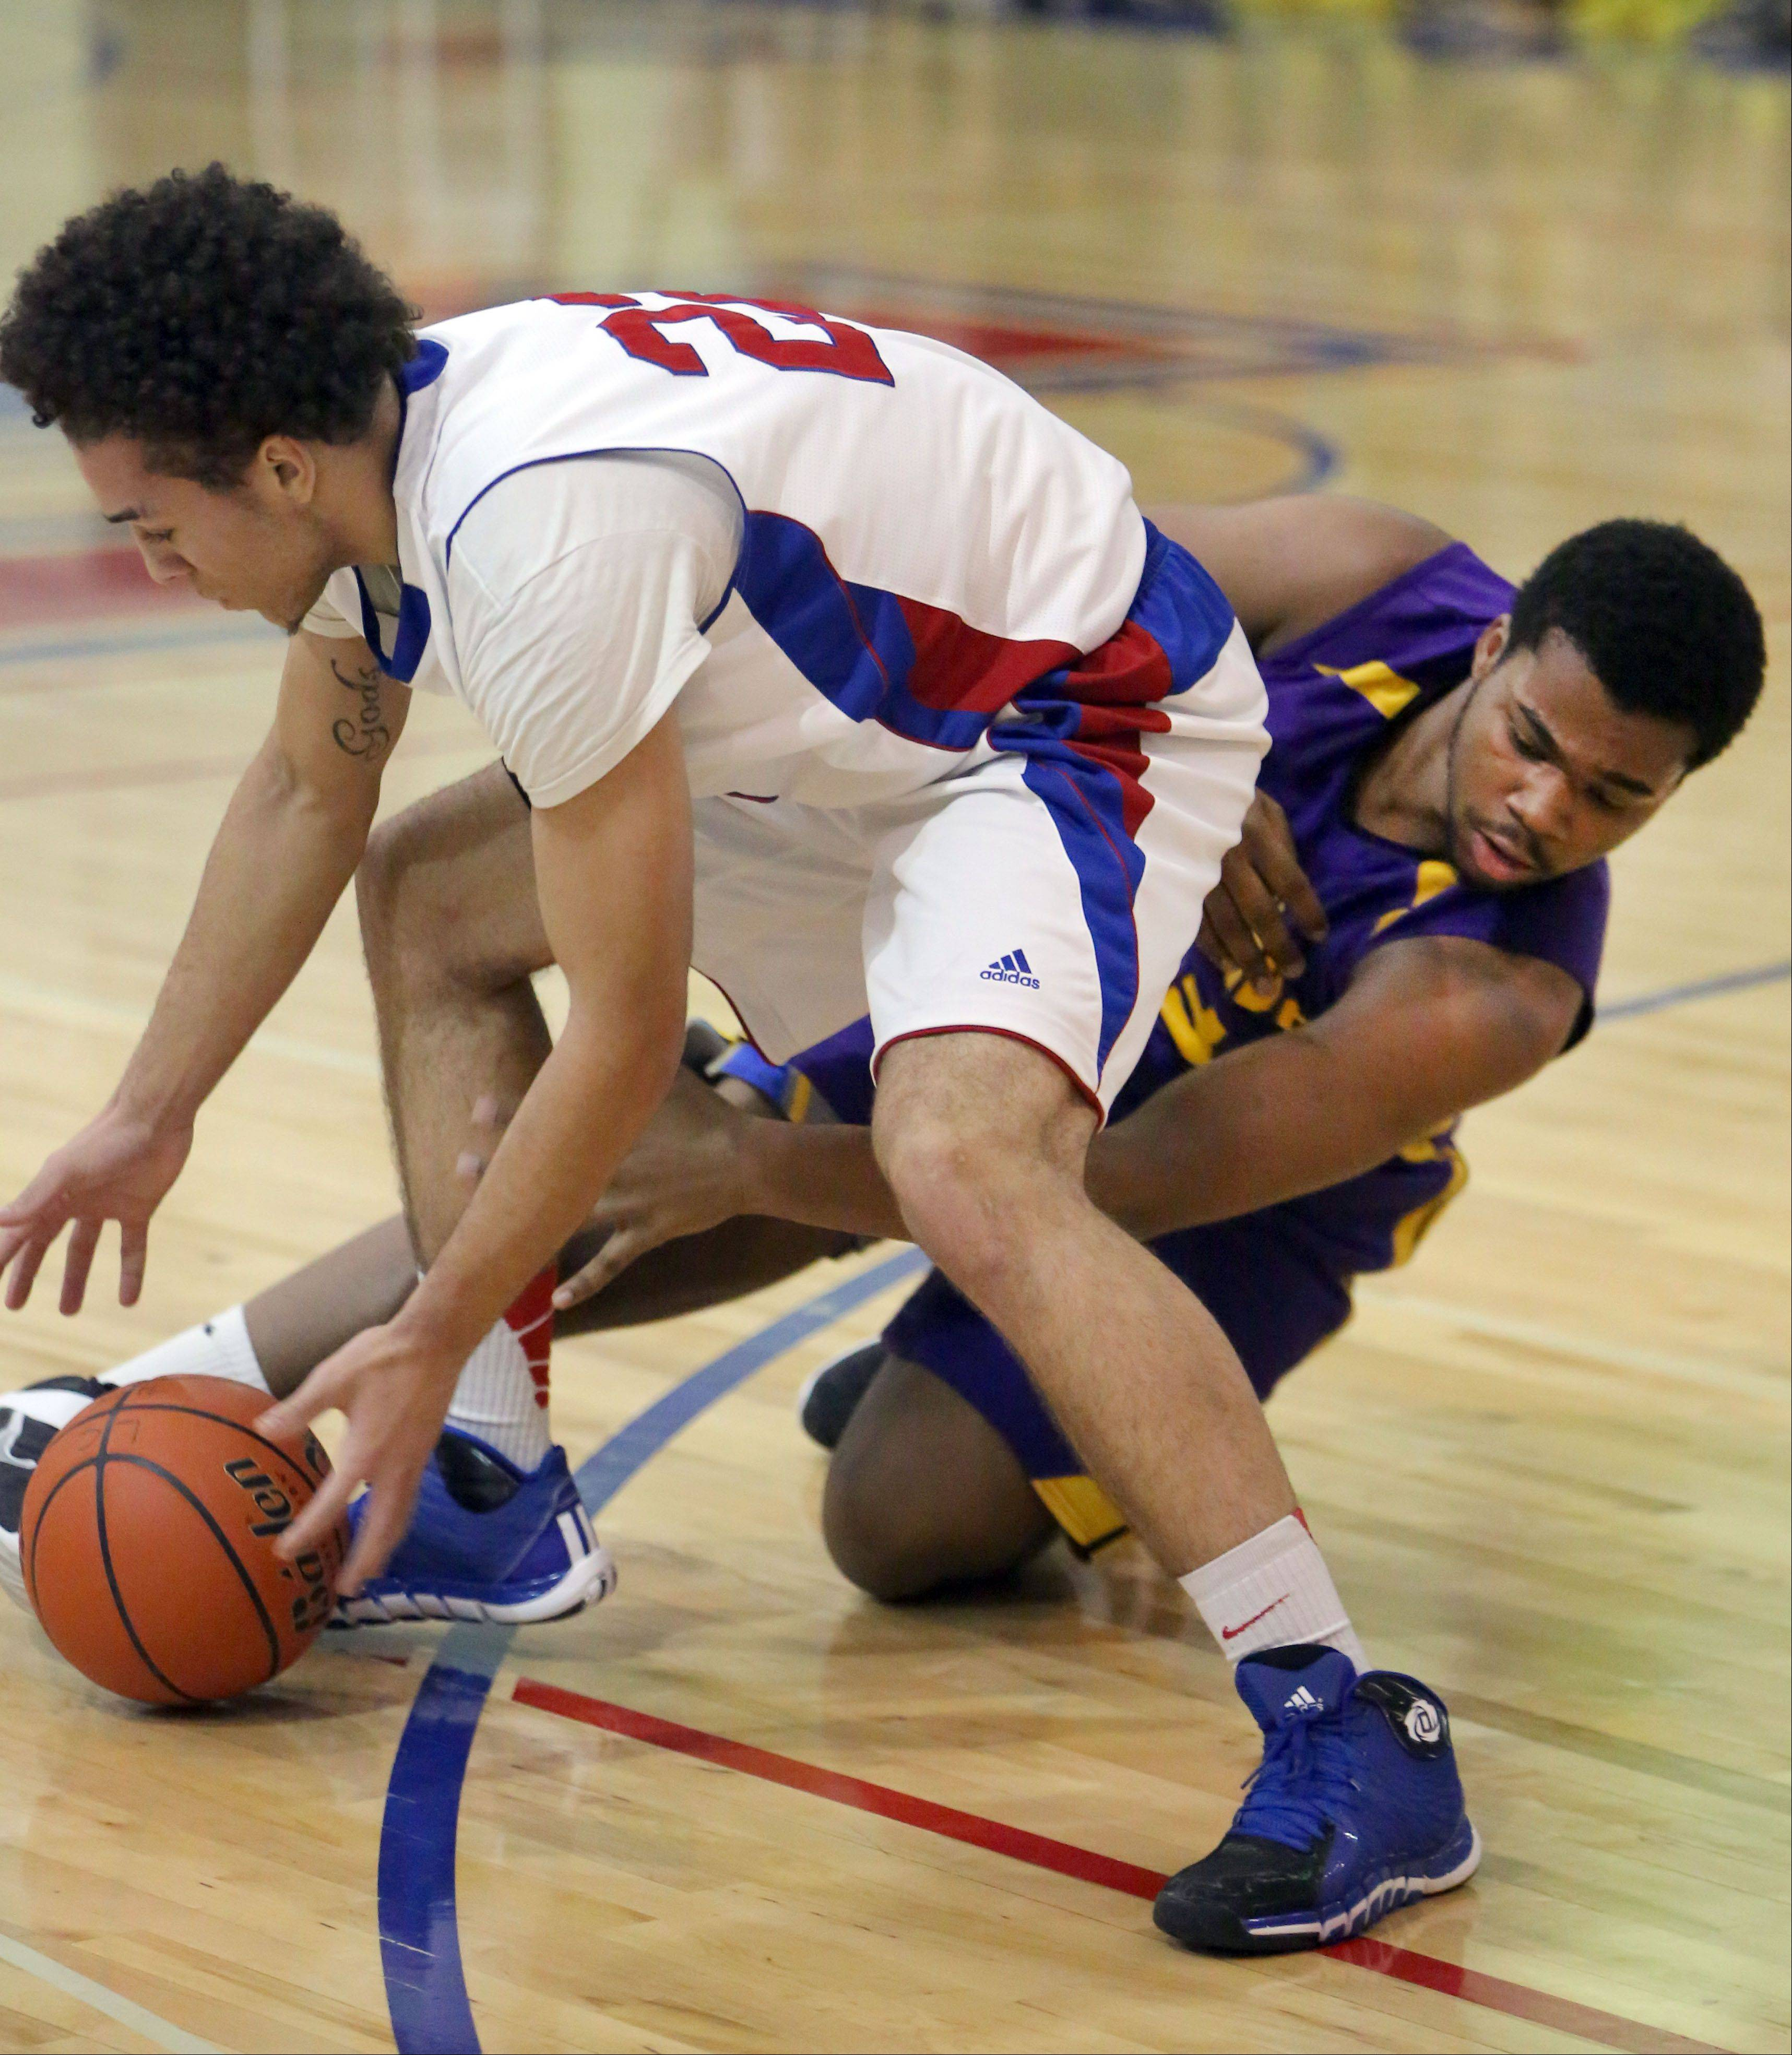 Lakes' Tramone Hudson, left, and Wauconda's Dion Head scramble for a loose ball.